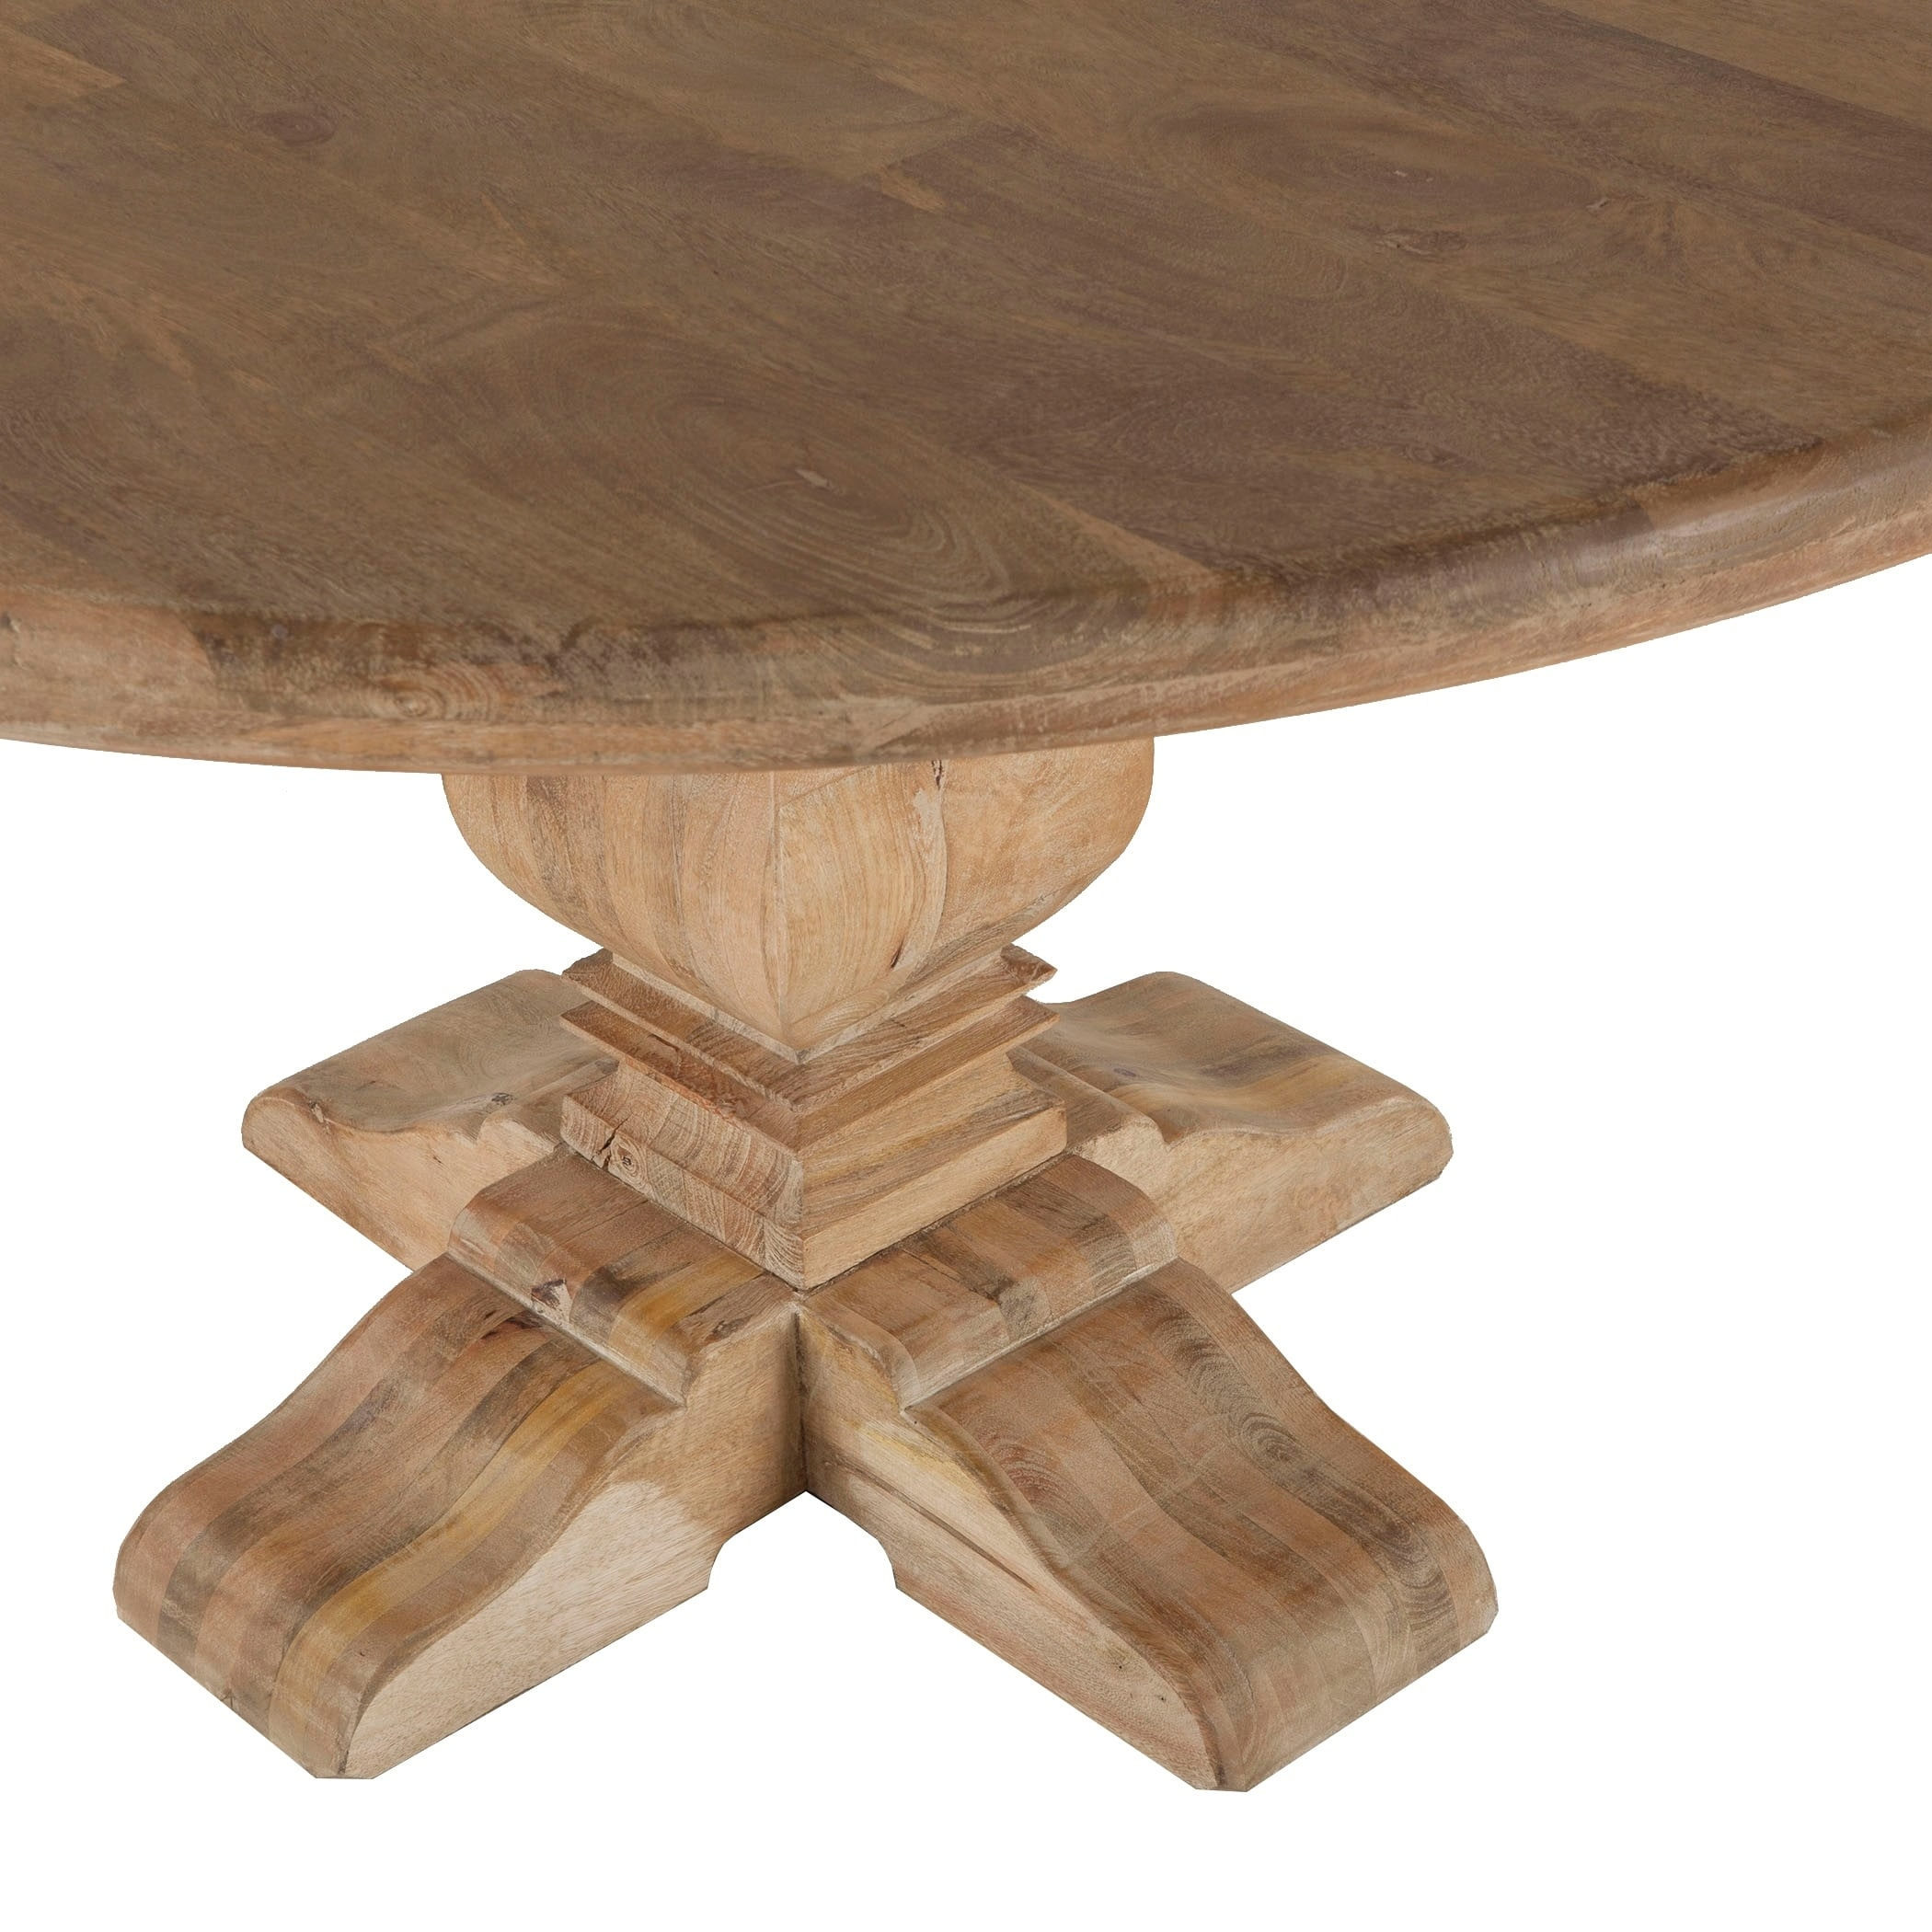 Mango Wood 54 Round Dining Table In Antique Oak By World Interiors On Free Shipping Today 17478033